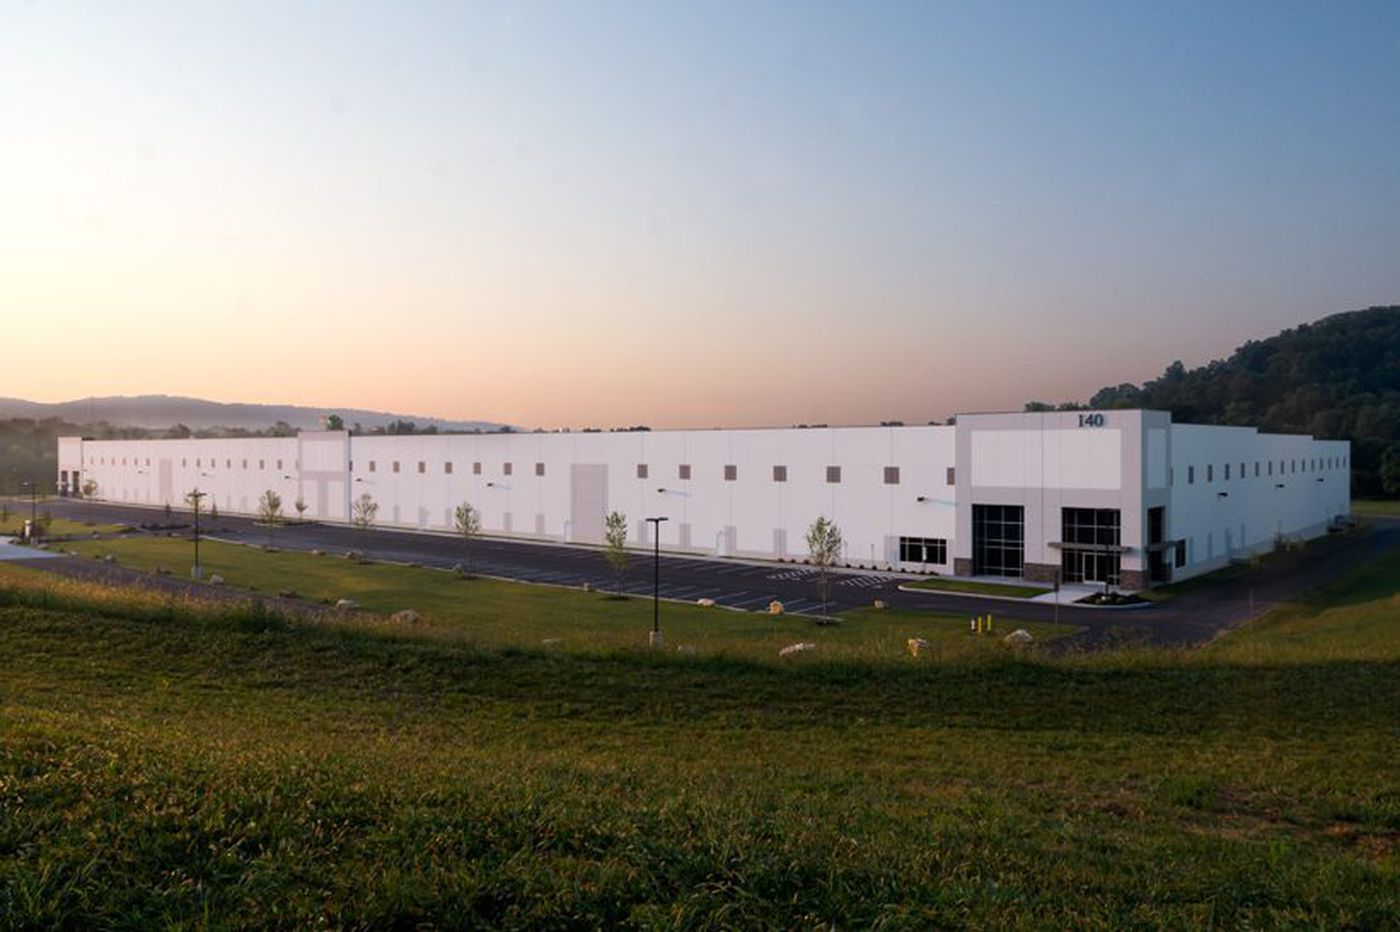 The great warehouse boom in Lehigh Valley and beyond